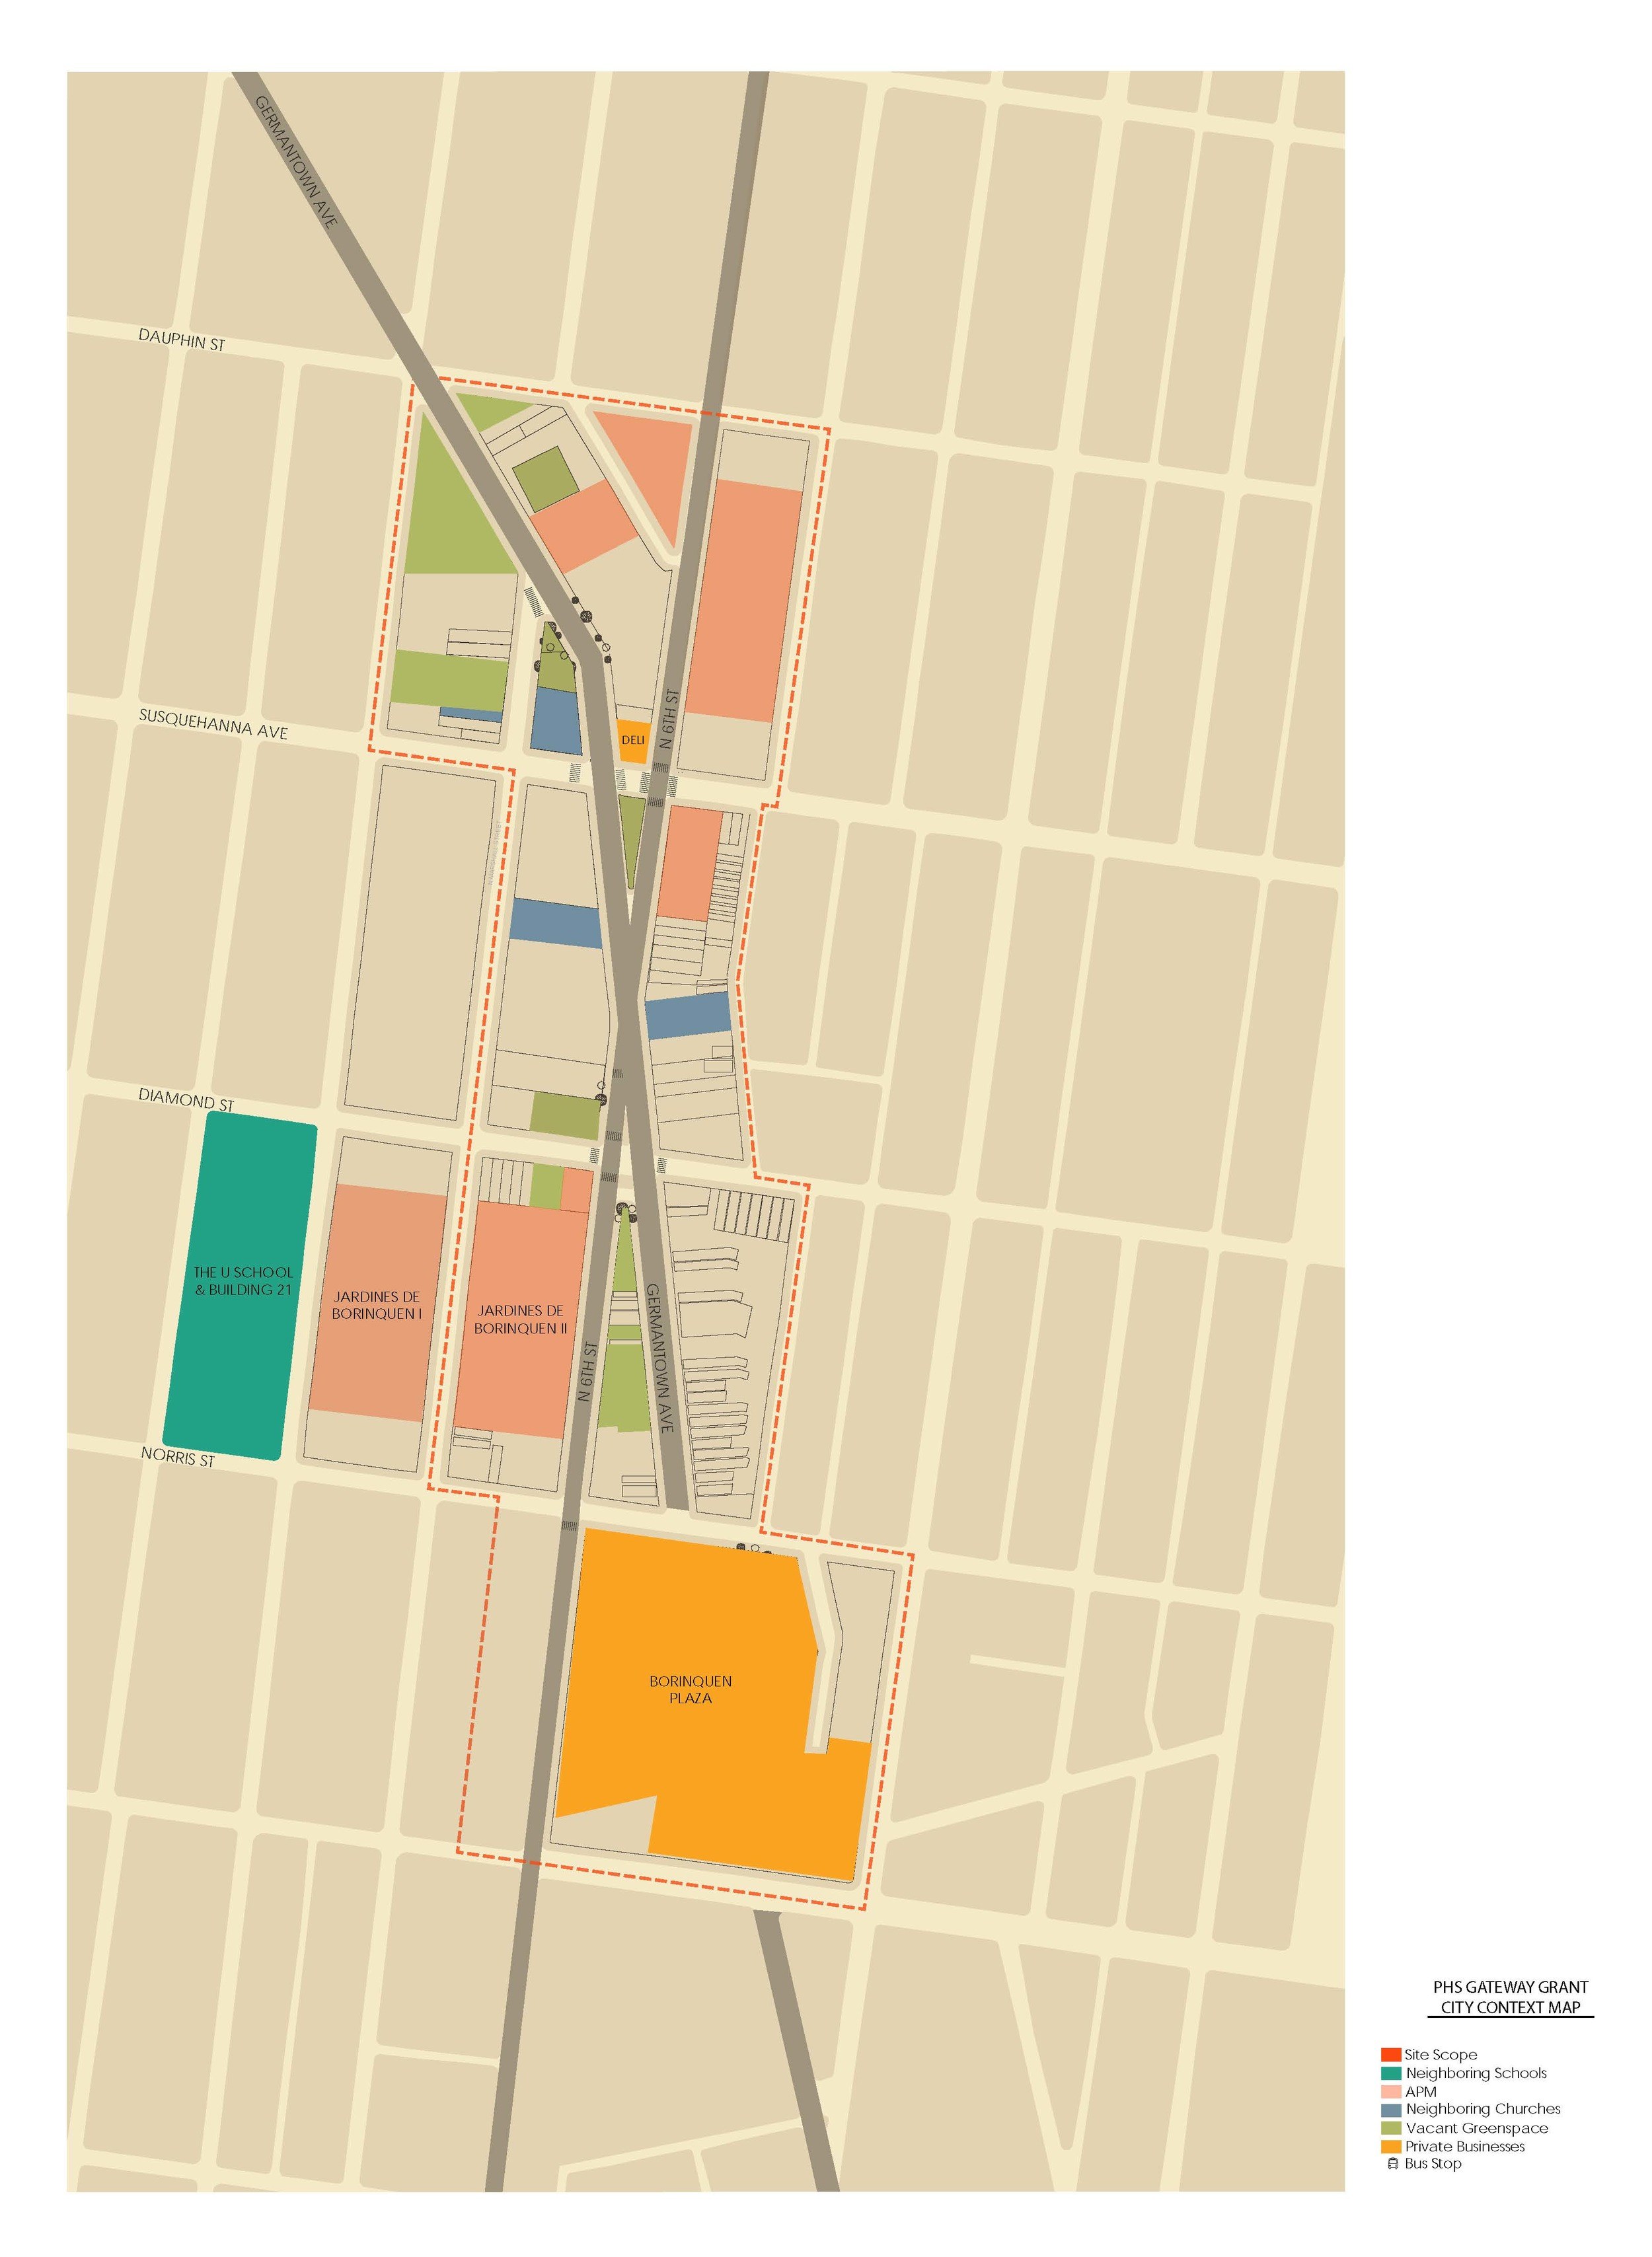 PHS Grant - Site Maps_Page_2.jpg